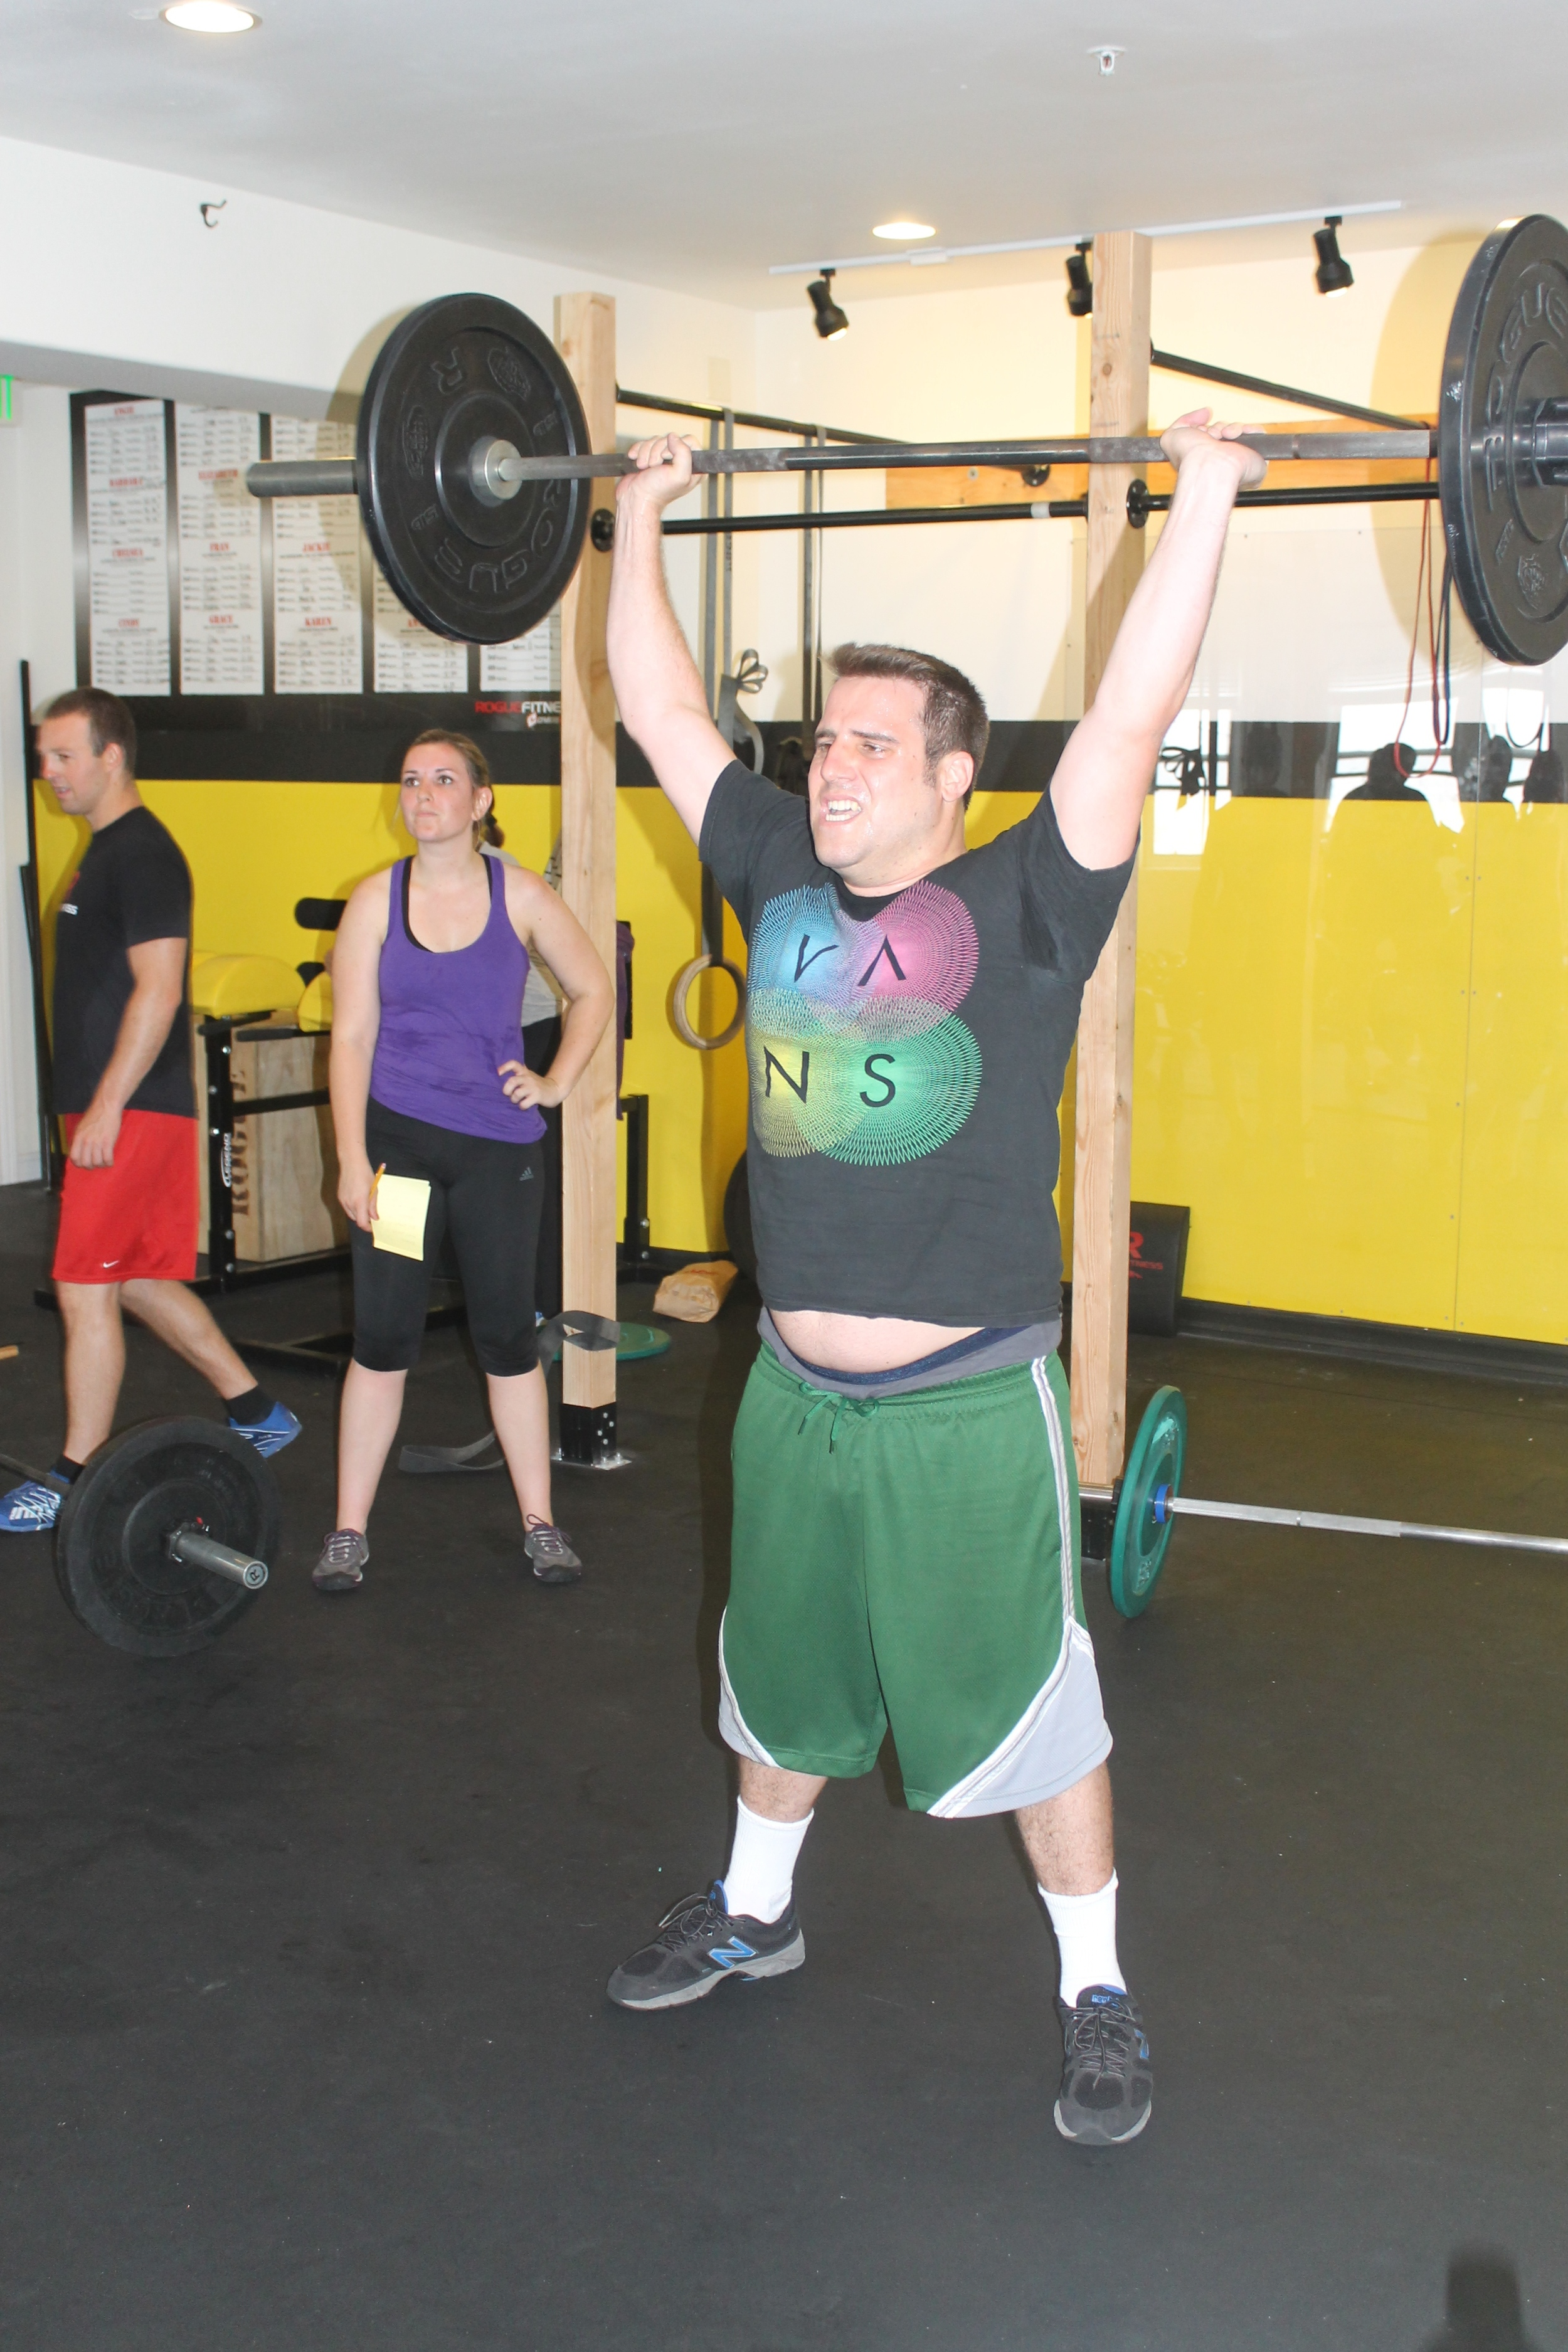 Congrats to Bryan Palmer for passing The Bar! He'll be back at the gym soon!